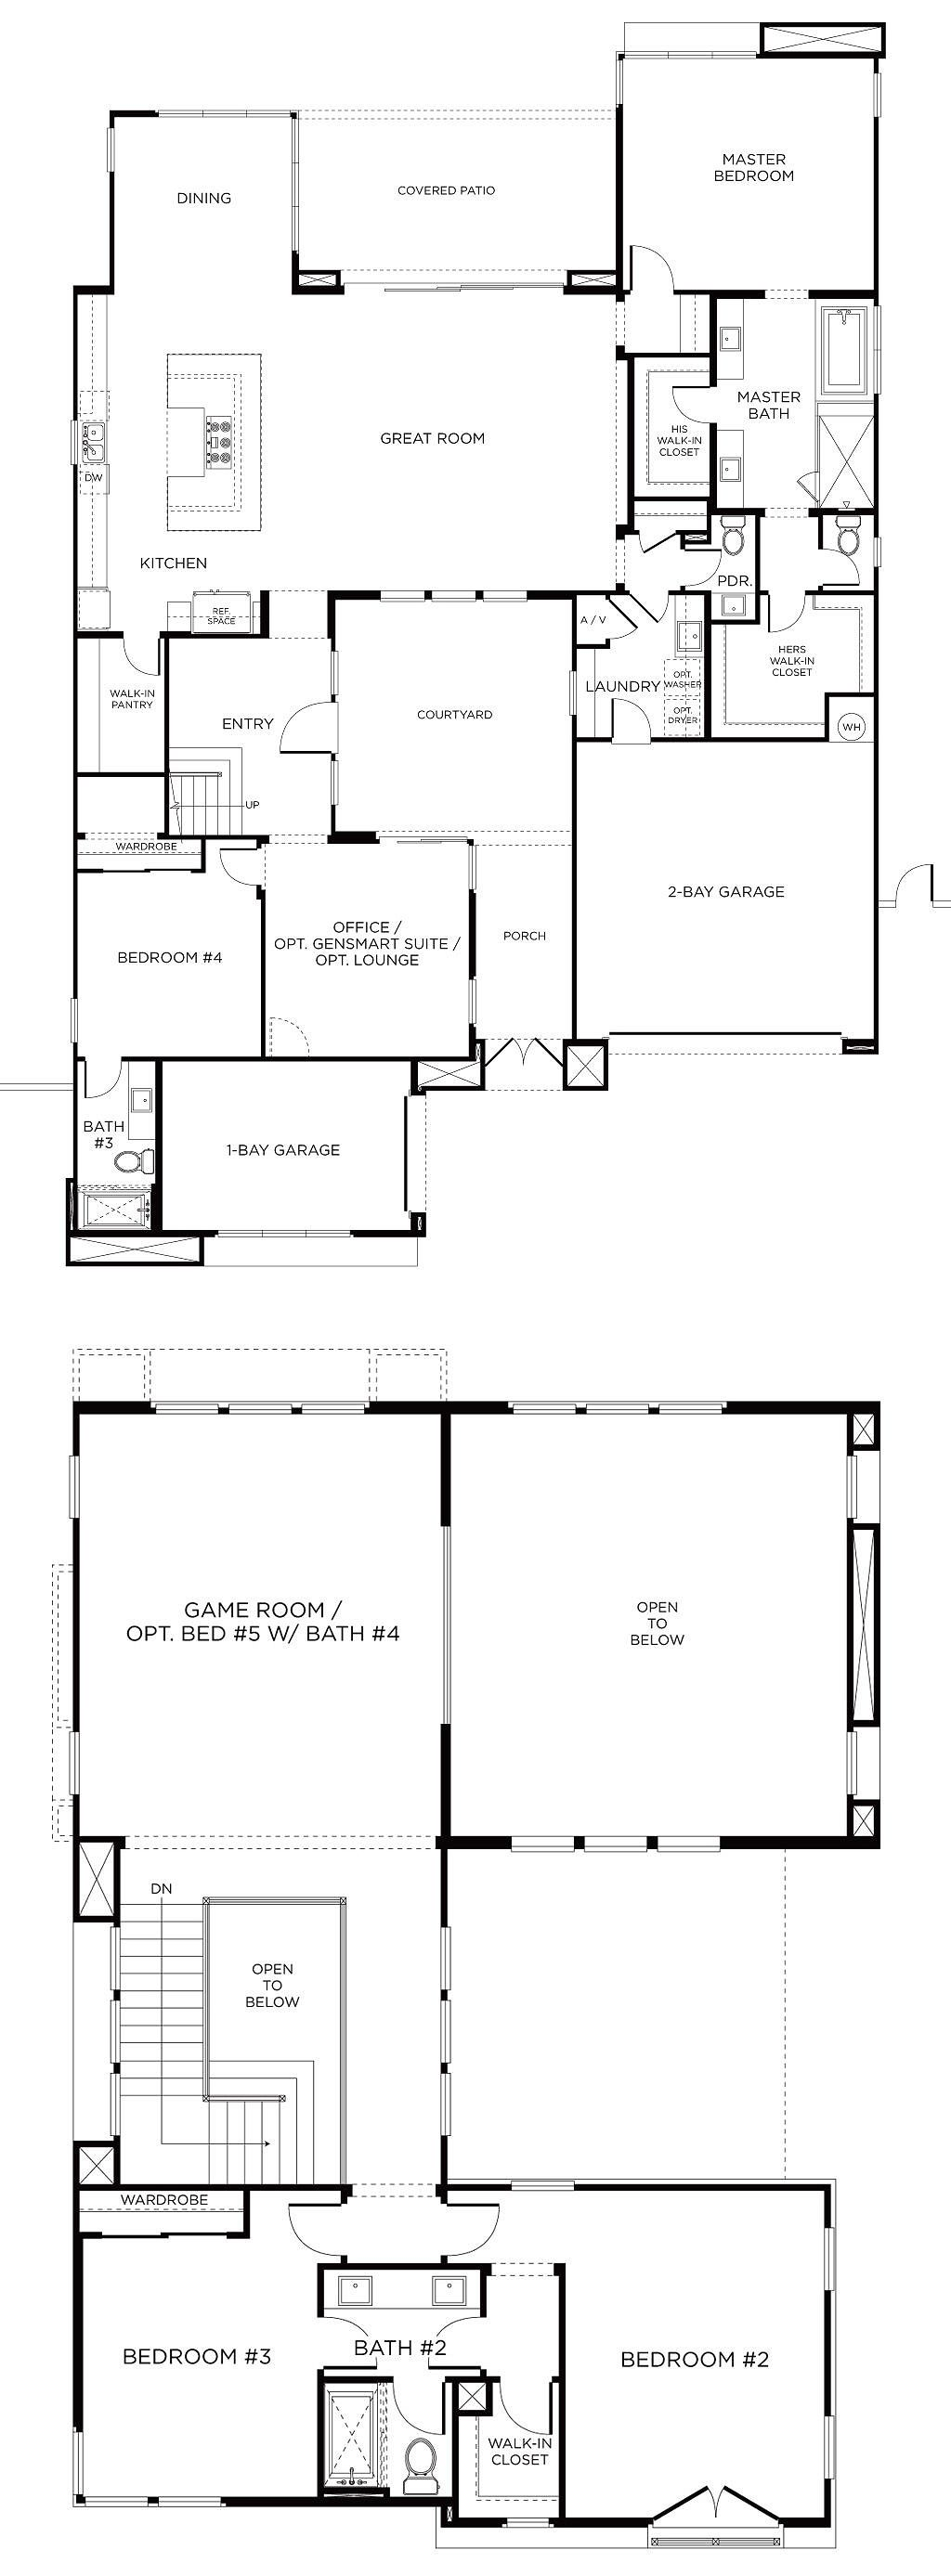 Executive Anvil Pardee Homes How To Plan Floor Plans,Table Engagement Decoration Ideas At Home